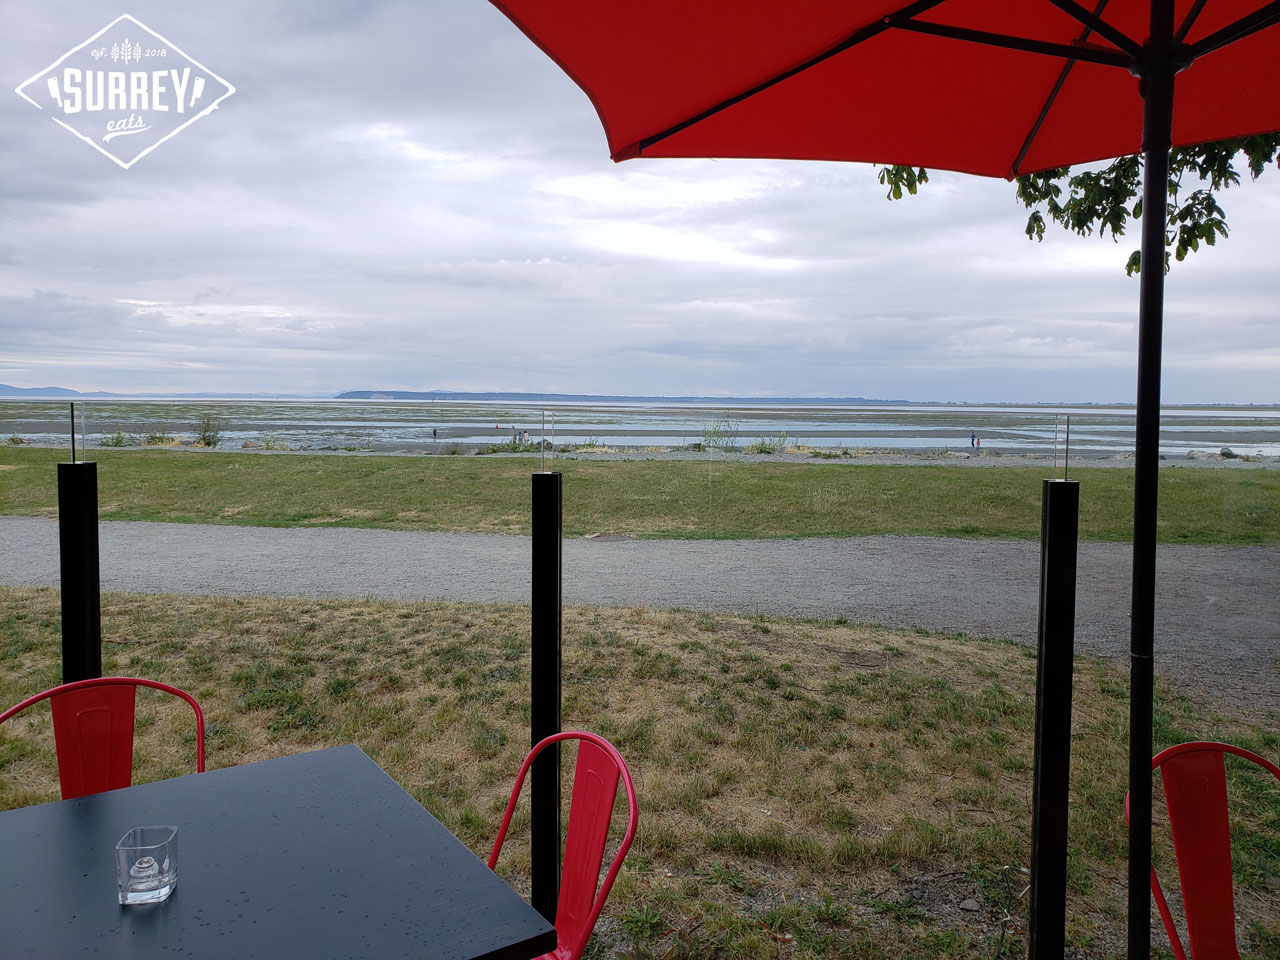 The view of Crescent Beach from under a patio umbrella at Cotto al Mare restaurant